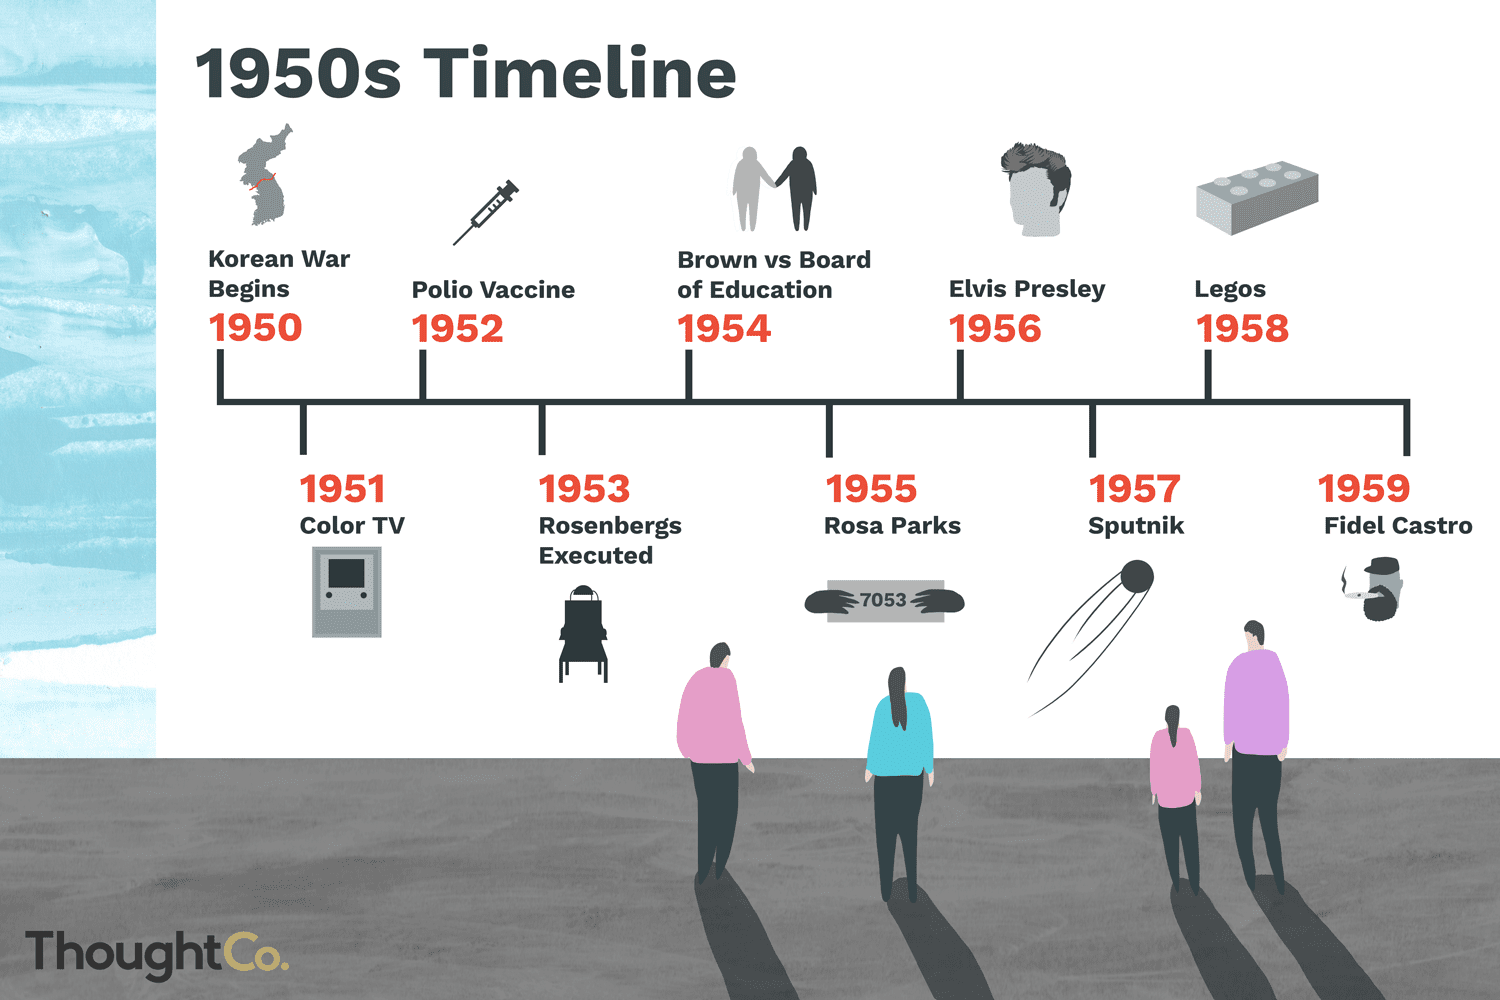 The World Made New Why The Age Of Exploration Happened: A Brief Timeline Of The 1950s